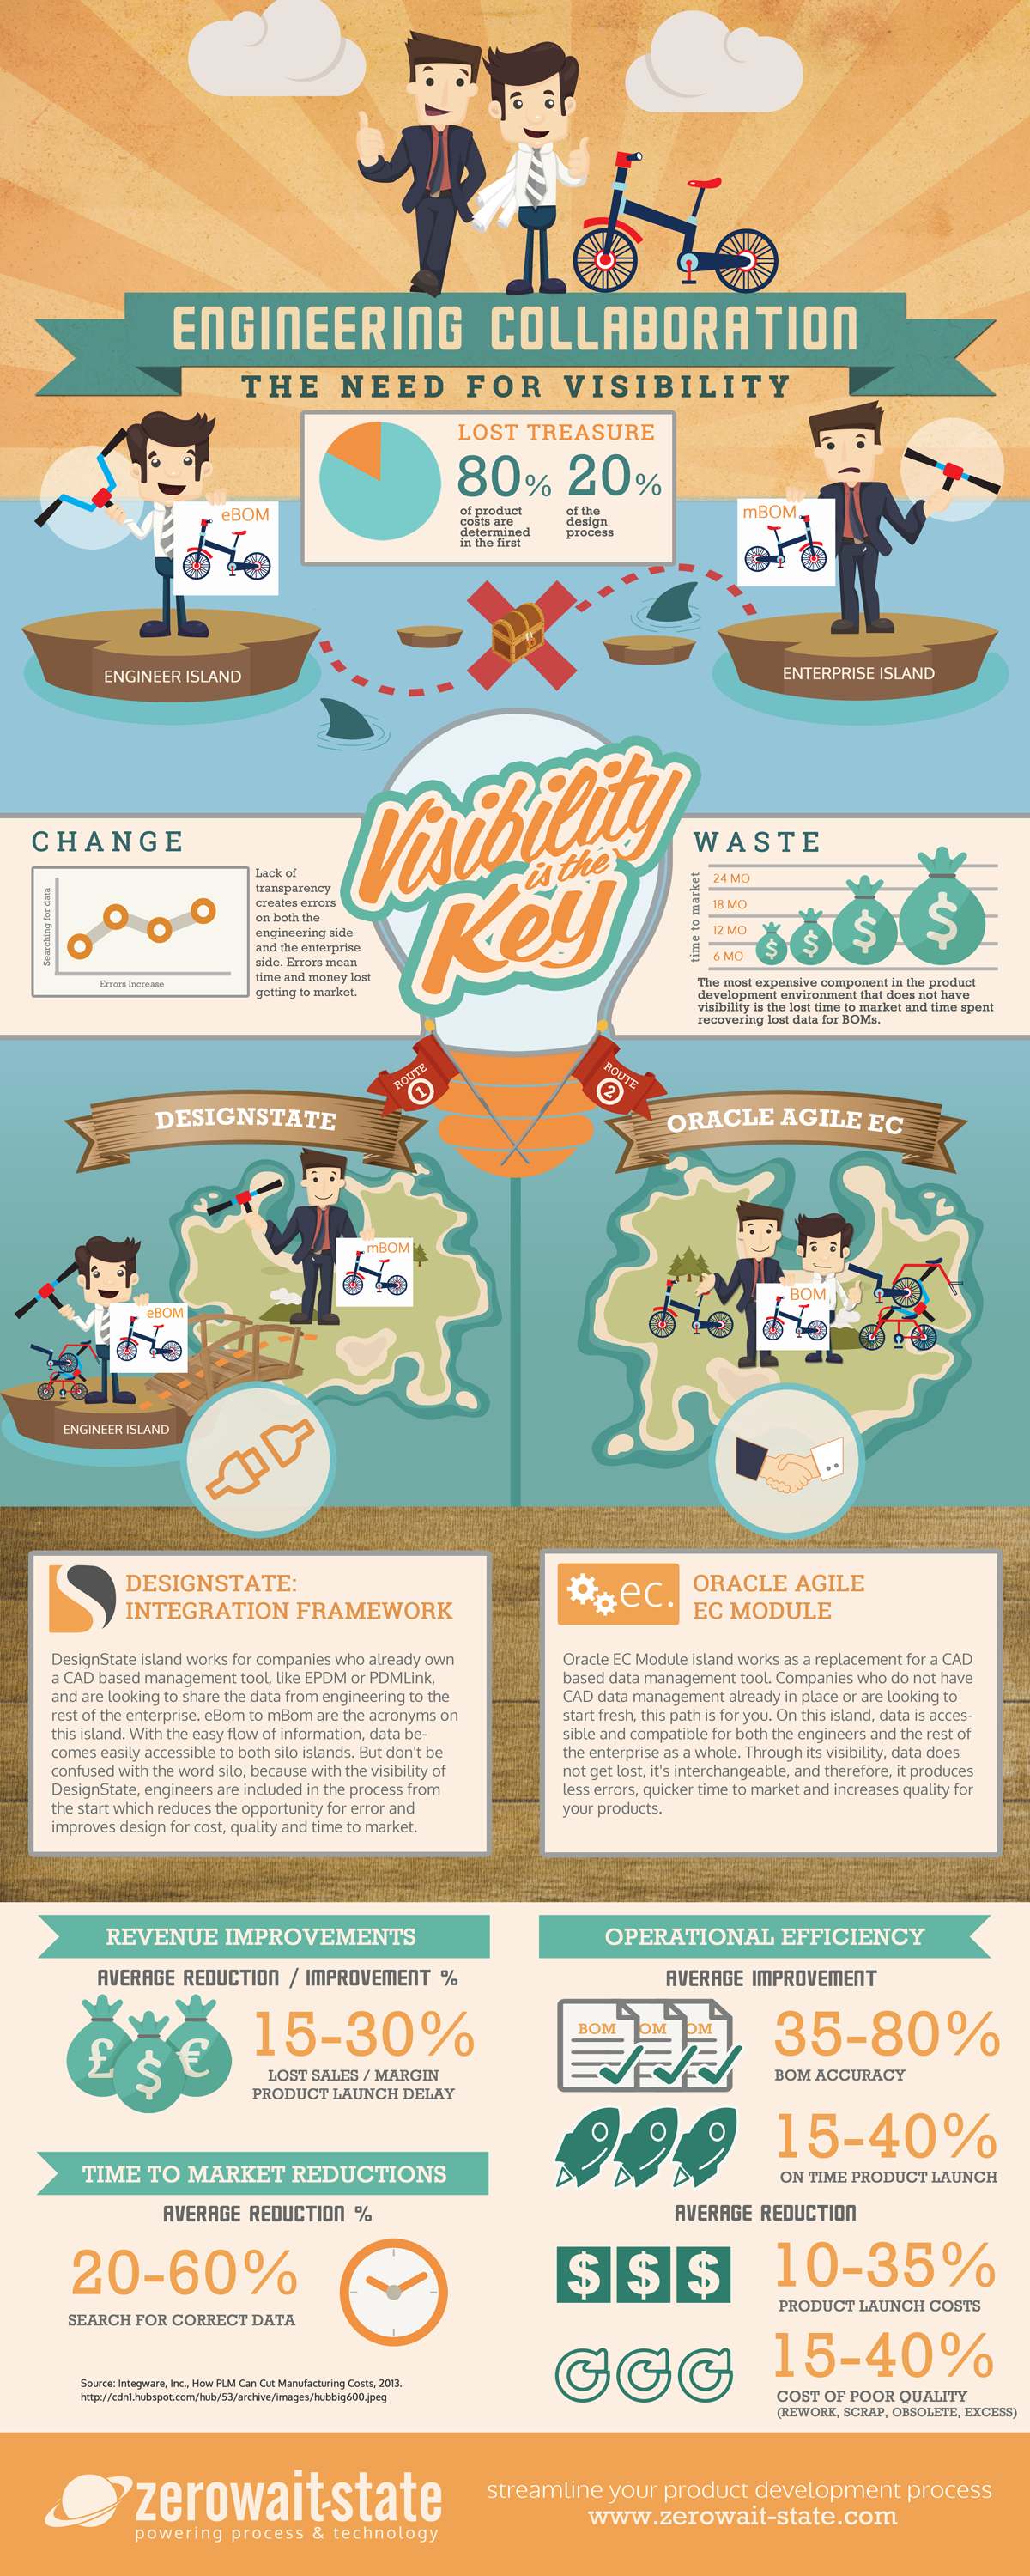 Engineering Collaboration Infographic by Zero Wait-State